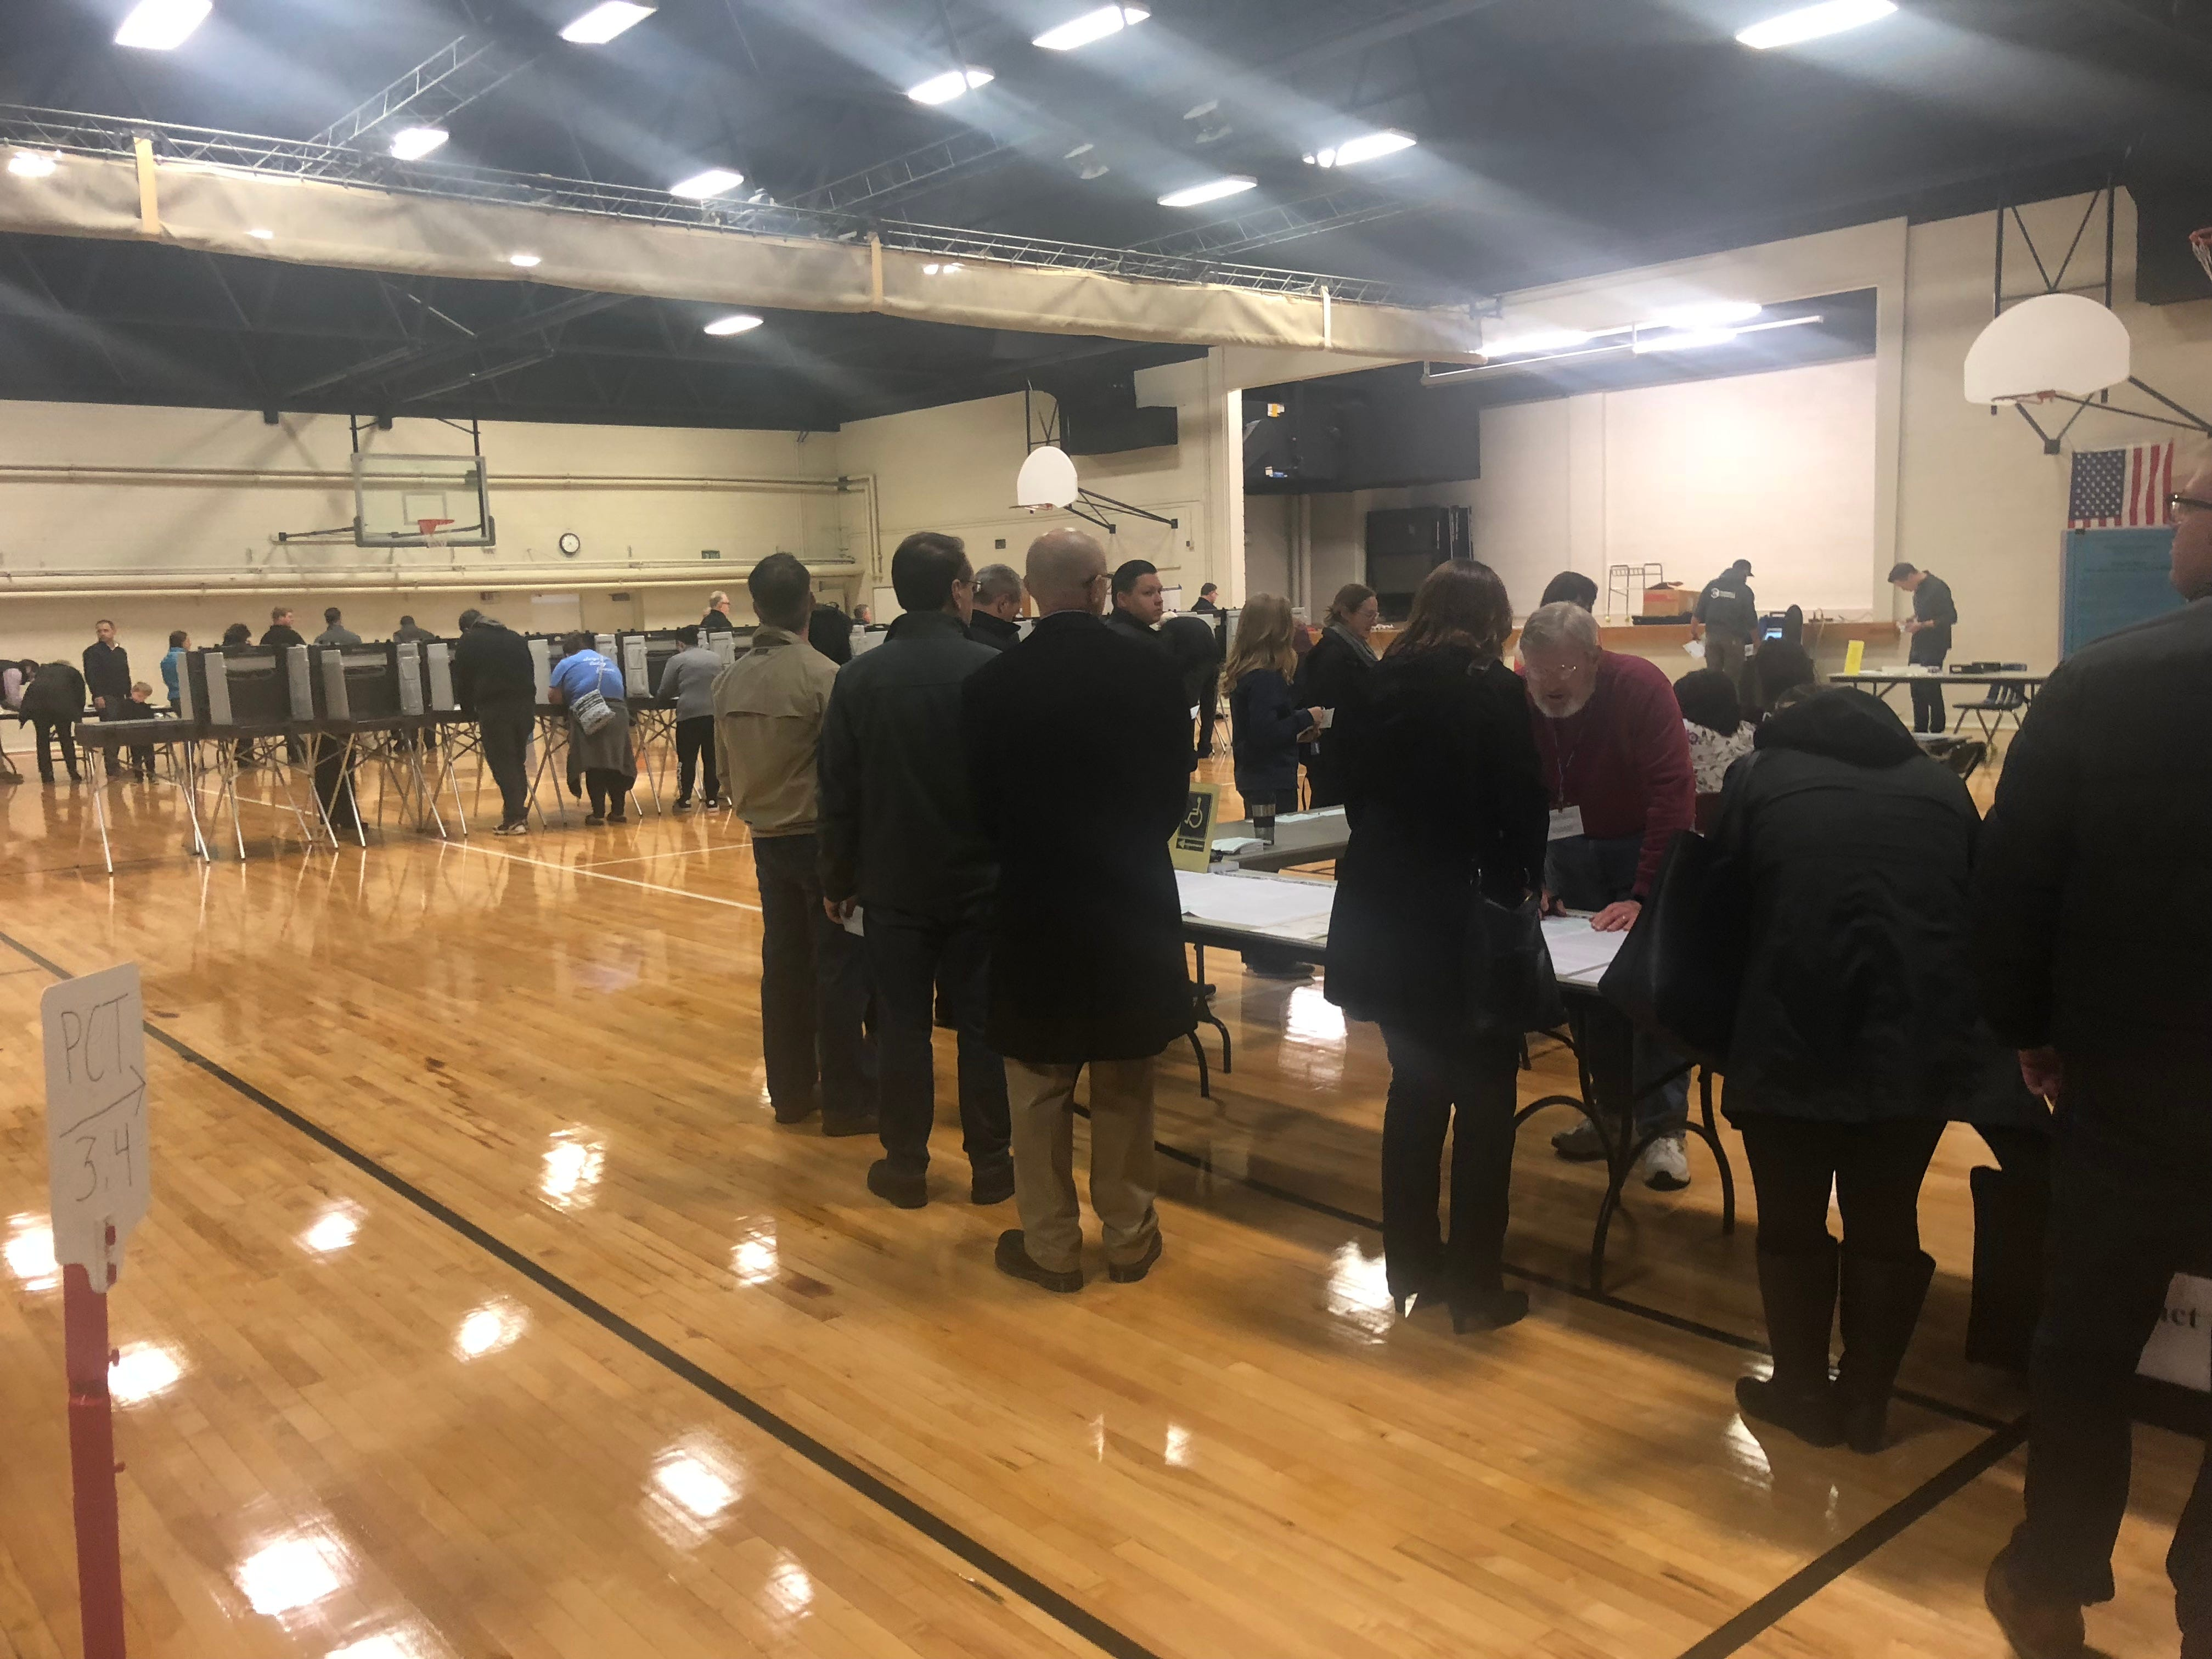 Voters at the Brighton Educational Community Center, home of precincts 3 and 4, on Tuesday morning, Nov. 6, 2018.